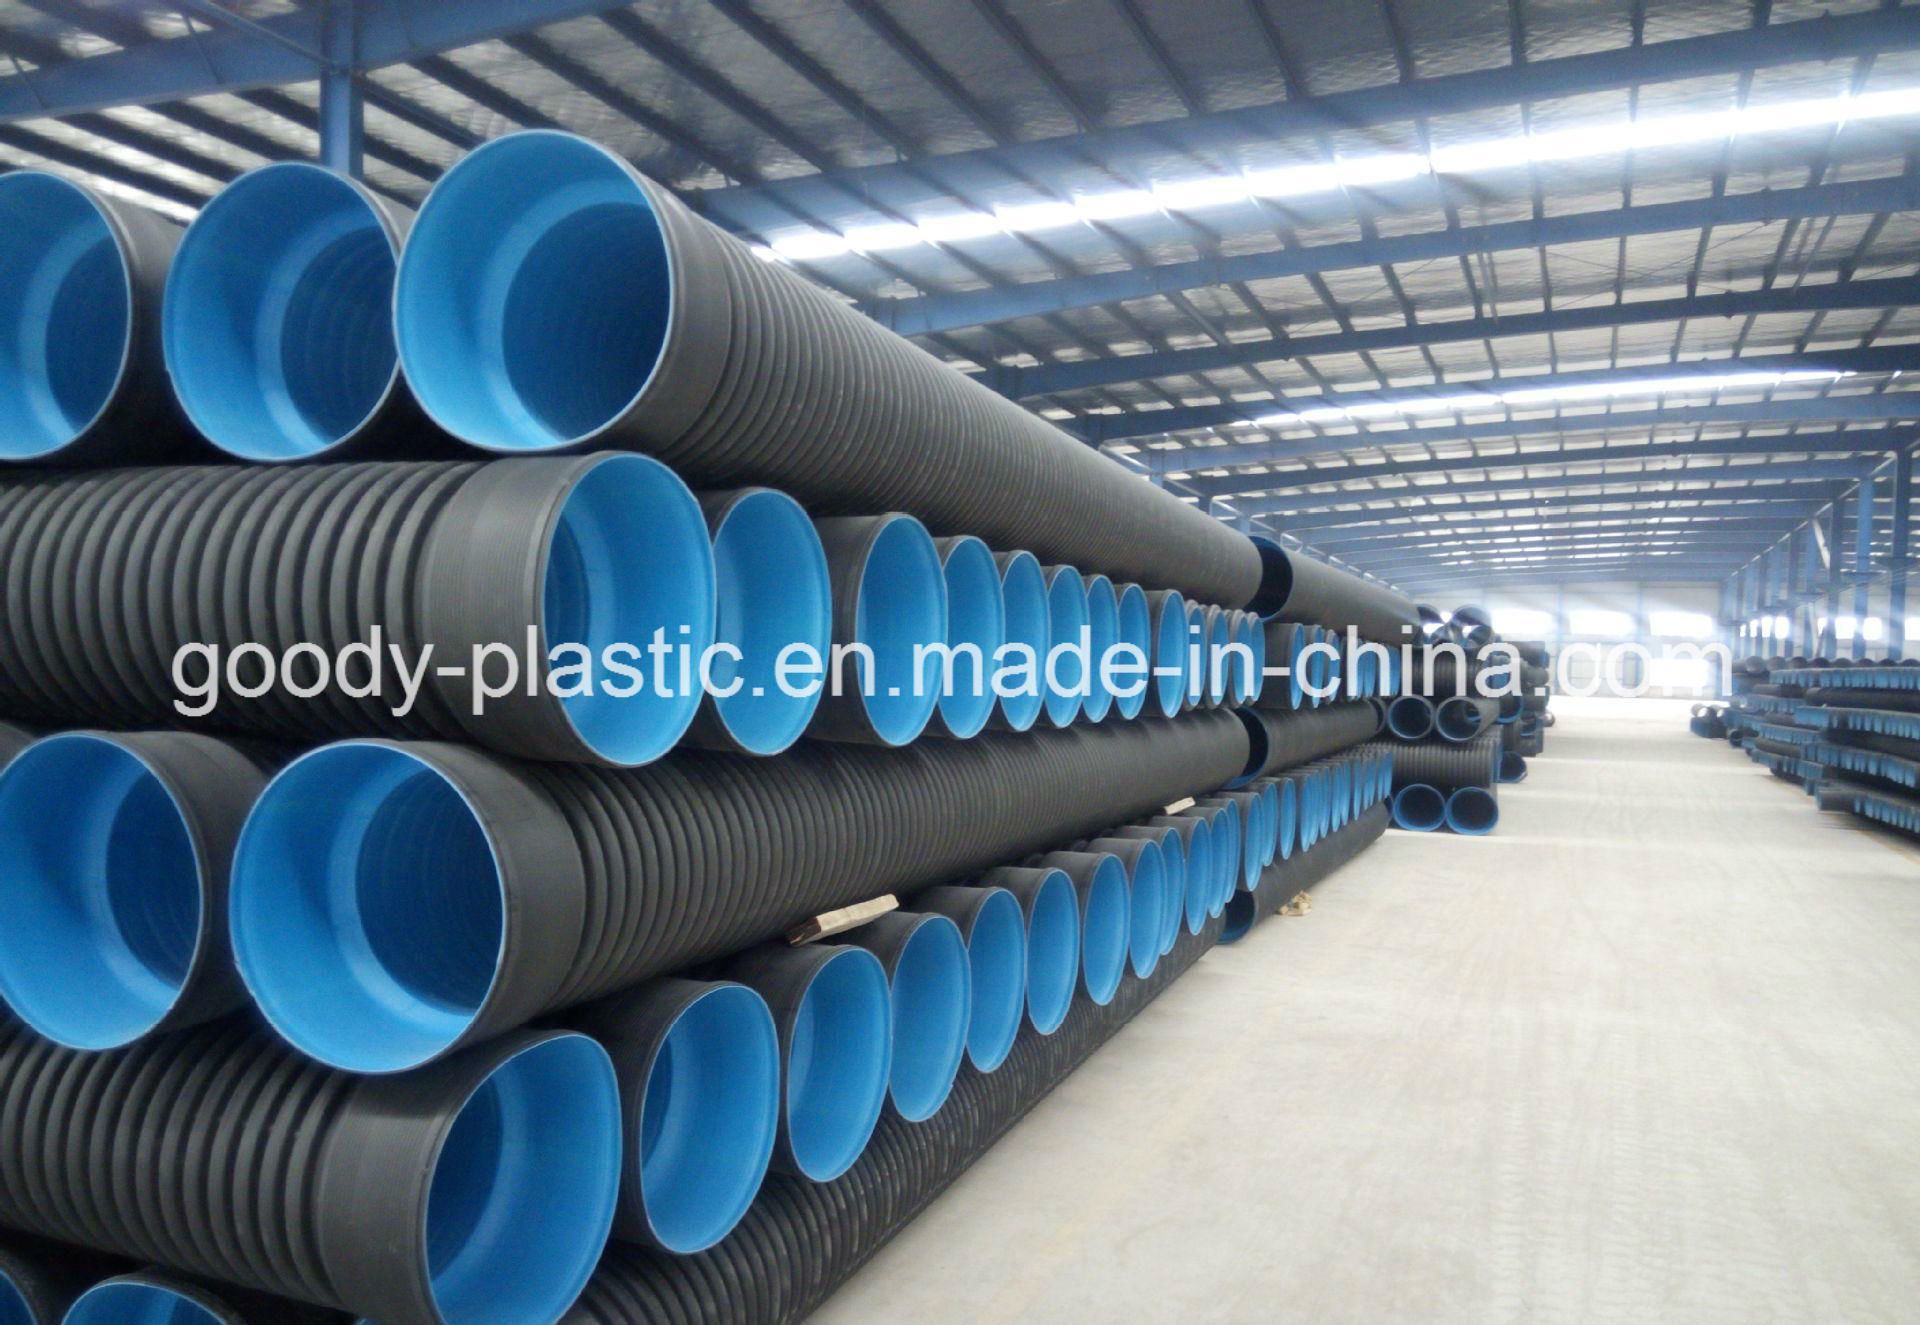 [Hot Item] HDPE Double Wall Corrugated Pipe Specifications Goody